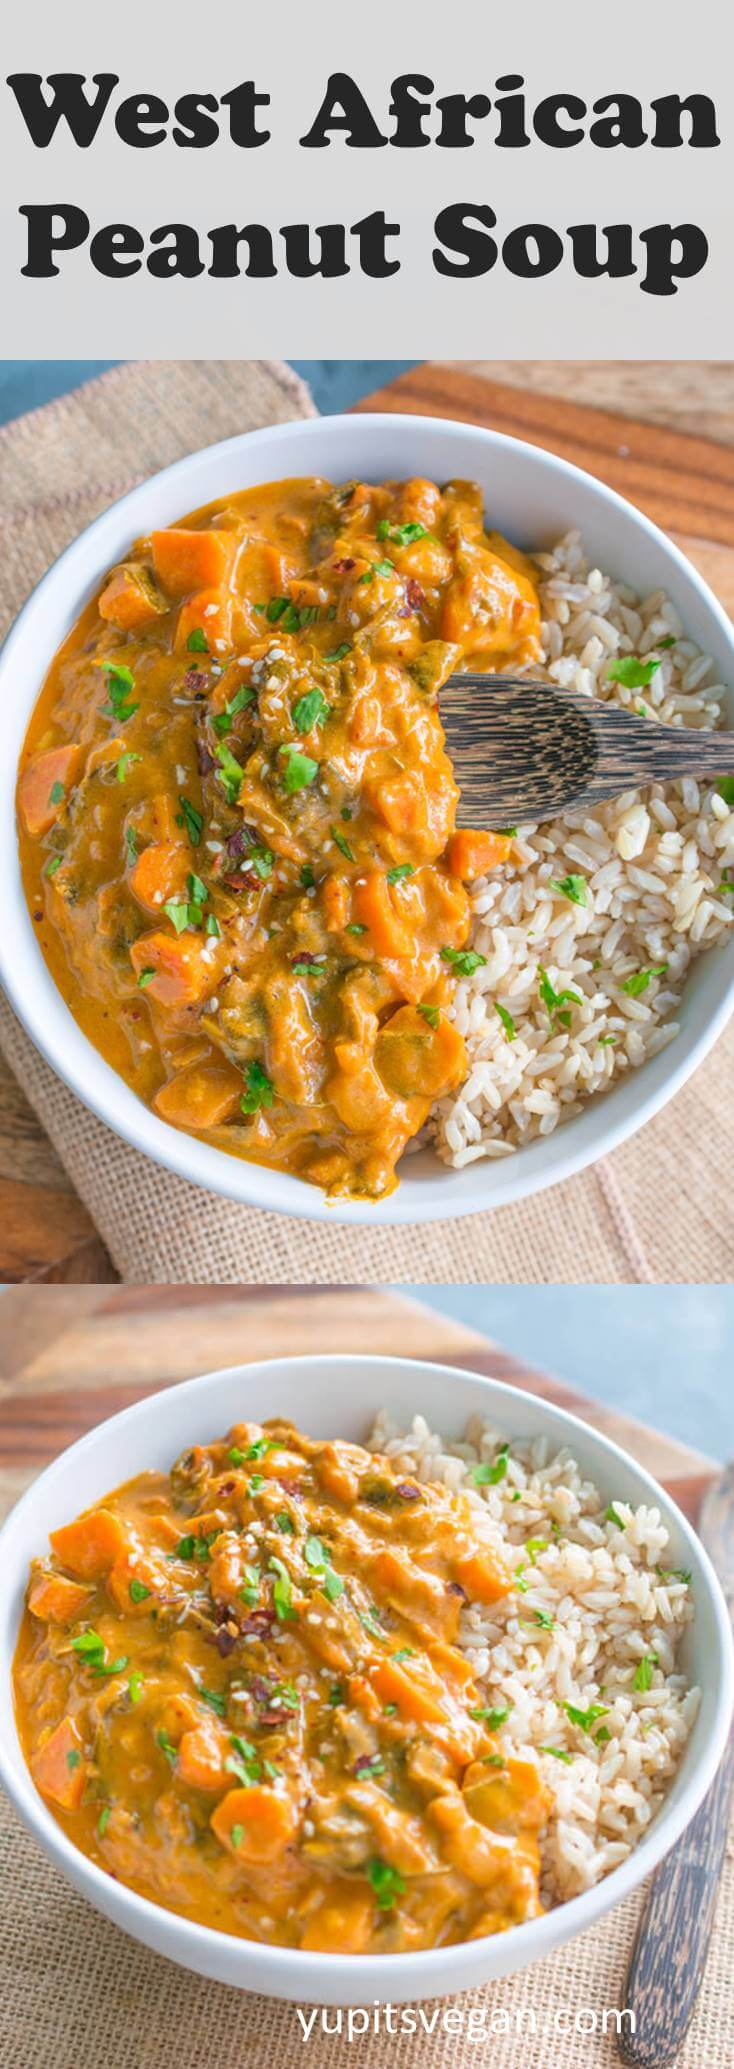 West African Peanut Soup (or Stew!). Vegan, gluten-free, packed with veggies, inspired by traditional Ghanaian flavors. Ready in 45-minutes. Nut-free and paleo options too!